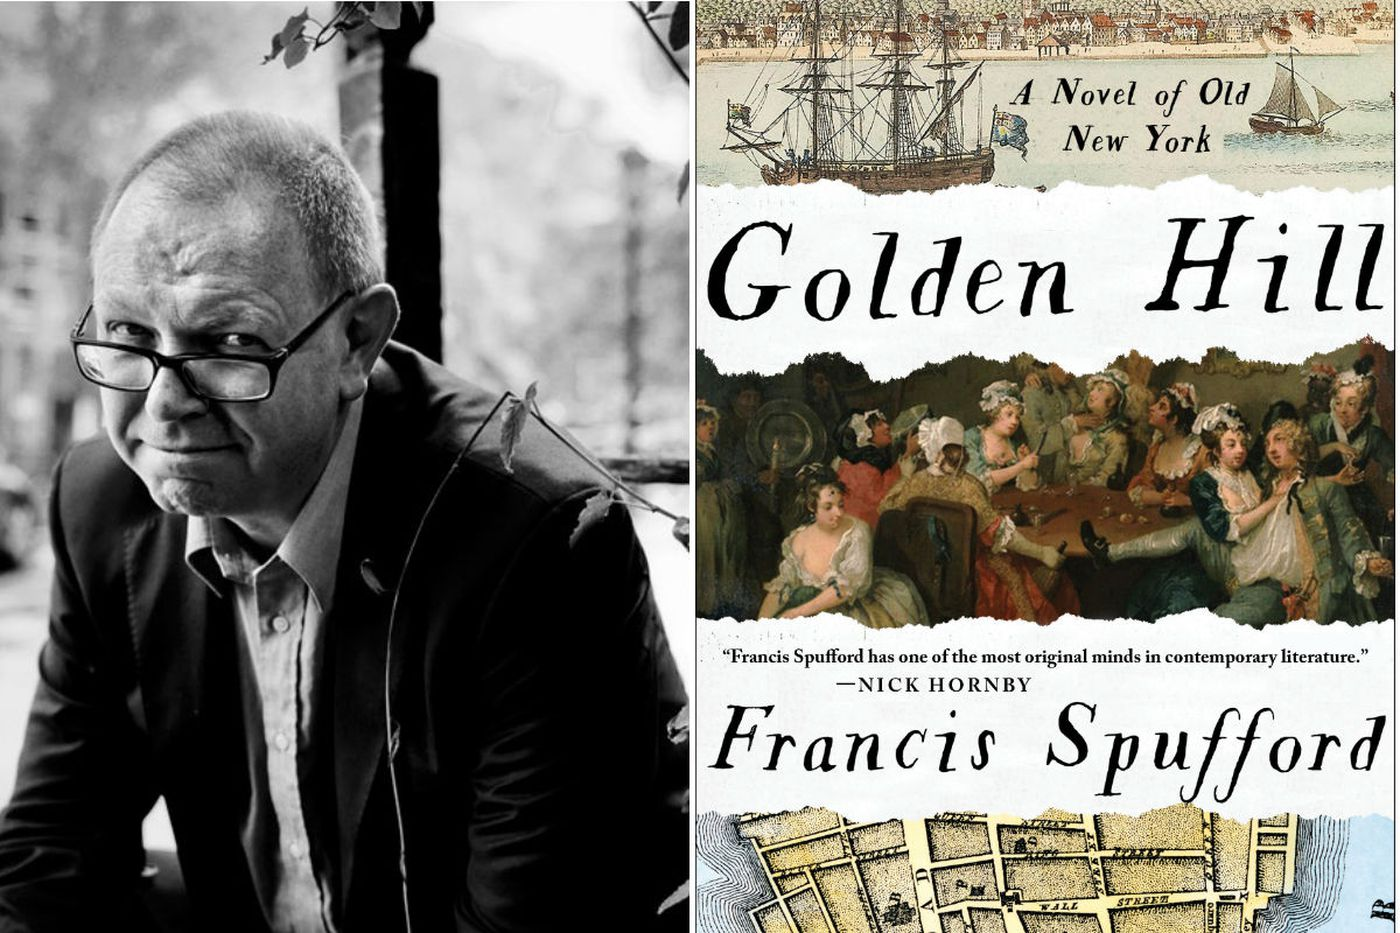 Old New York comes alive in Francis Spufford's 'Golden Hill'